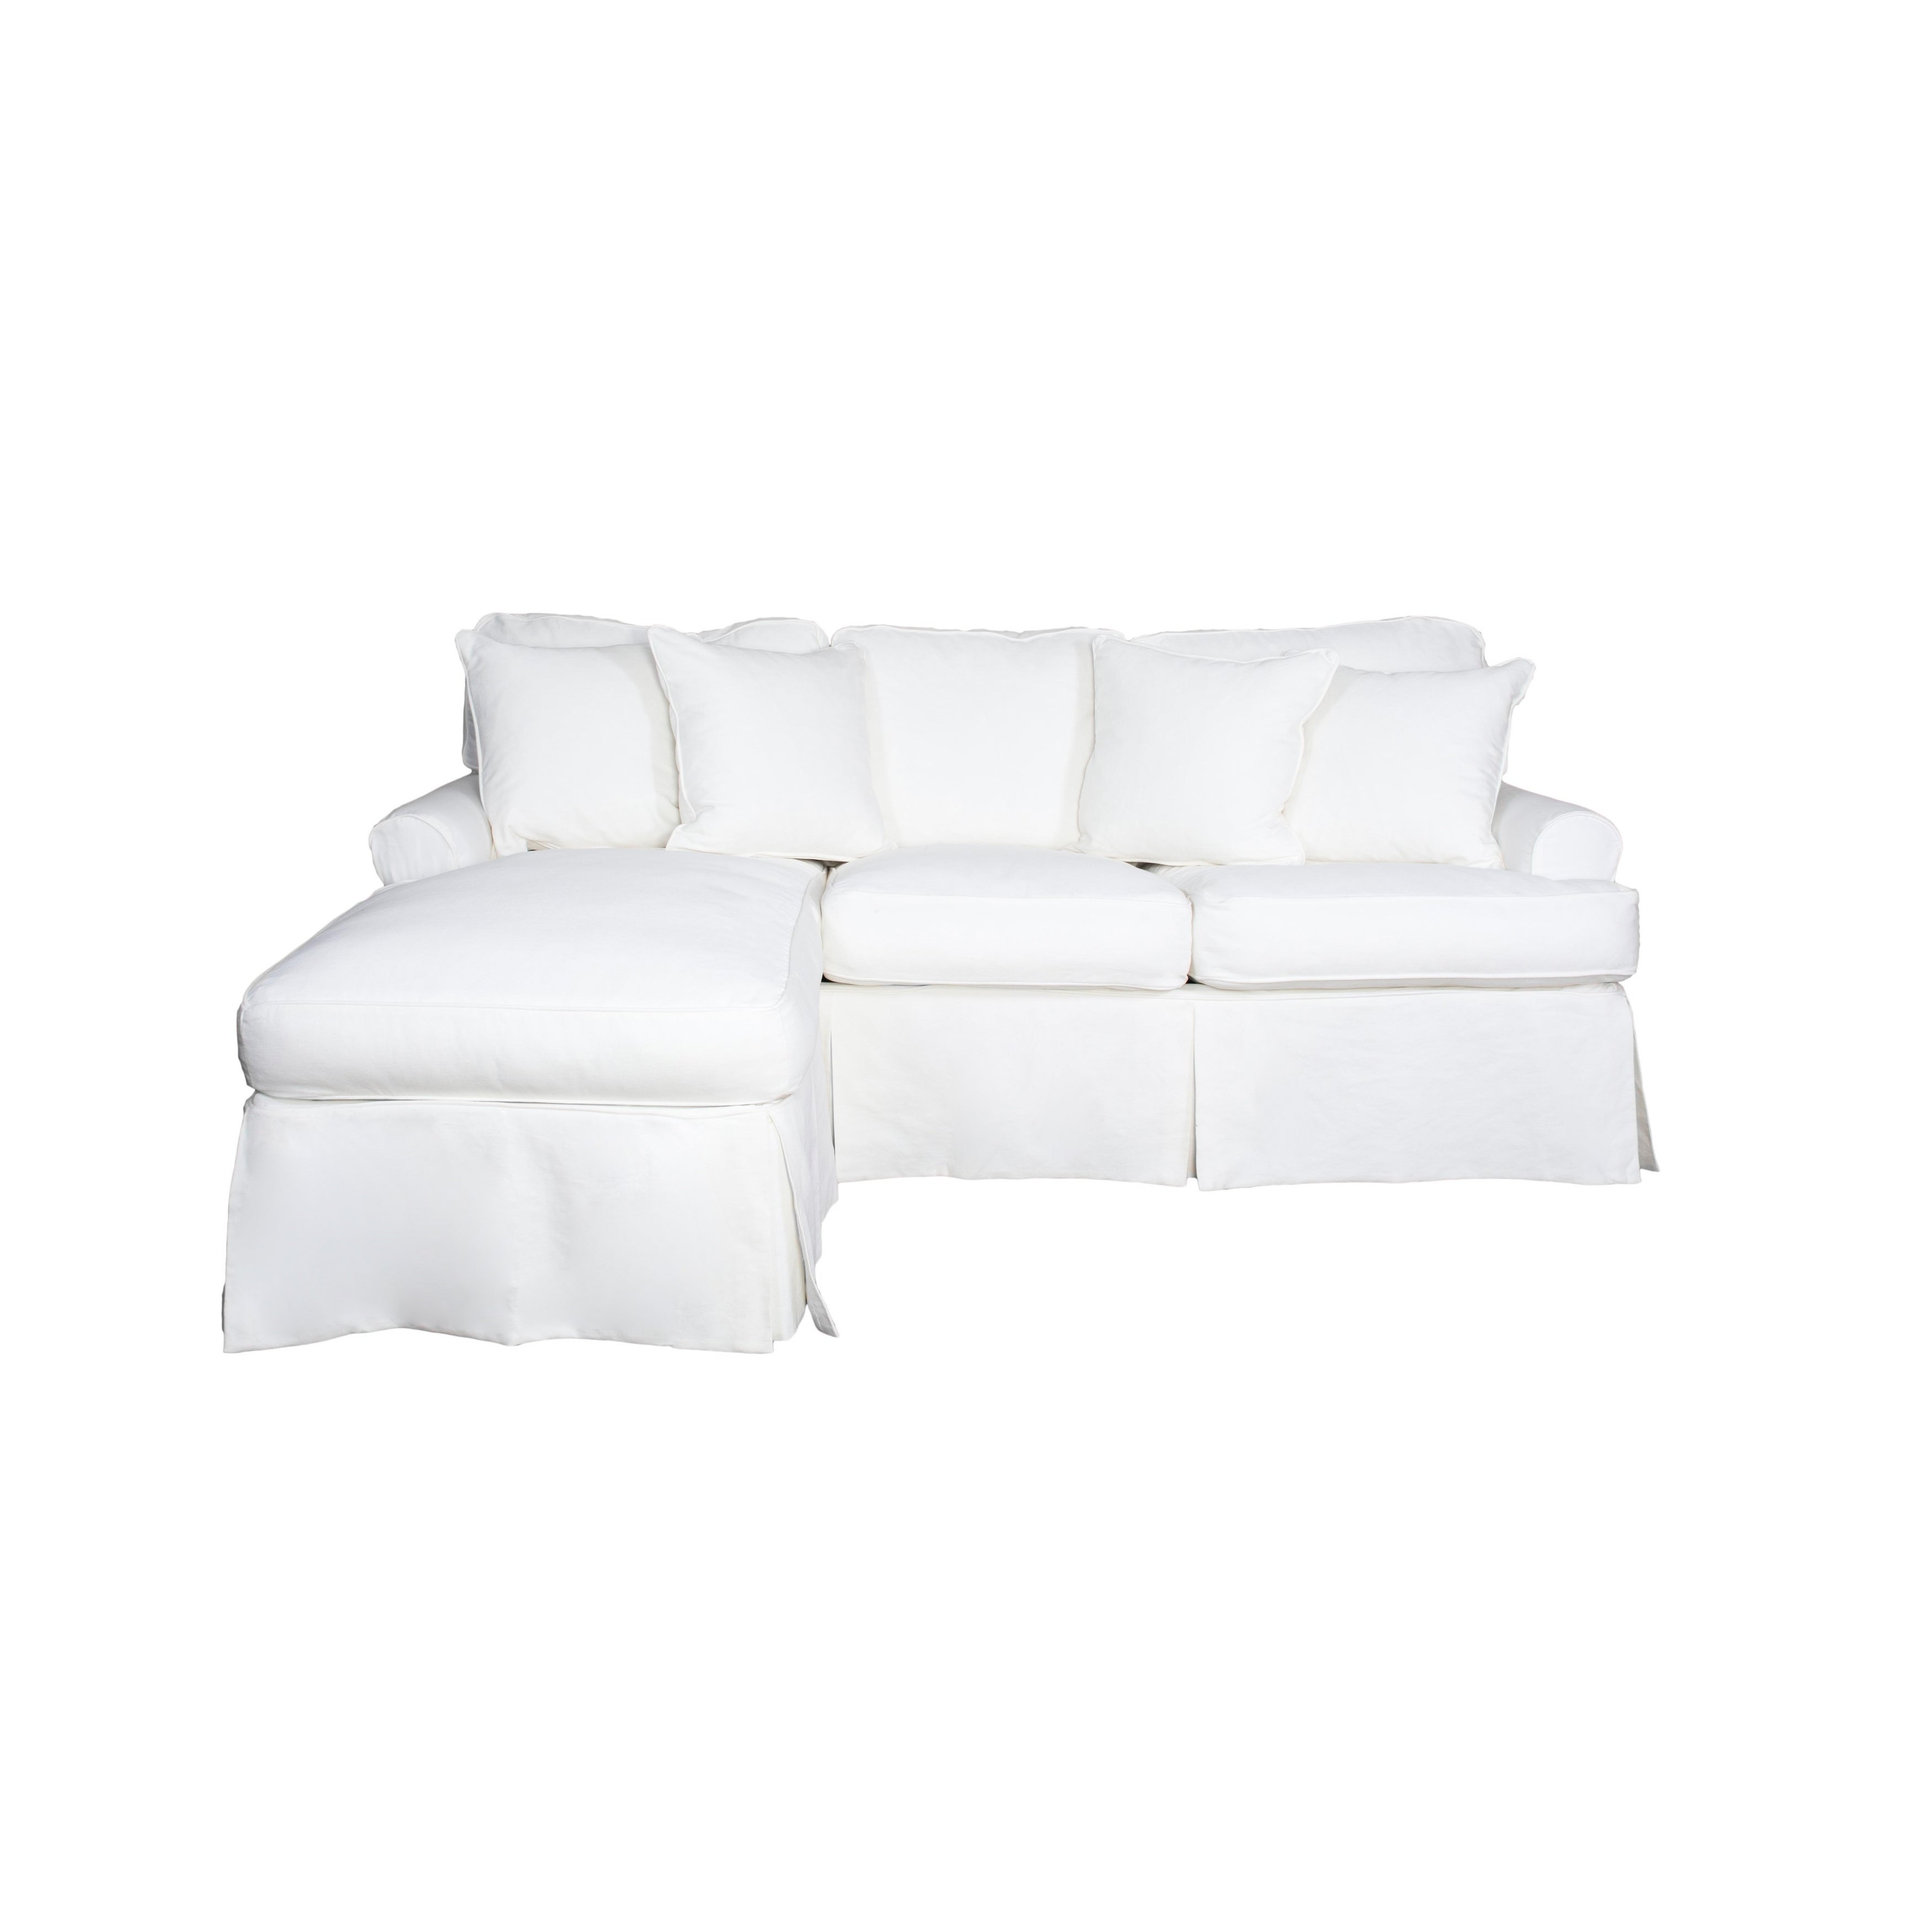 Stupendous Sunset Trading Horizon Sectional Sofa Slipcover White Cover Only Andrewgaddart Wooden Chair Designs For Living Room Andrewgaddartcom